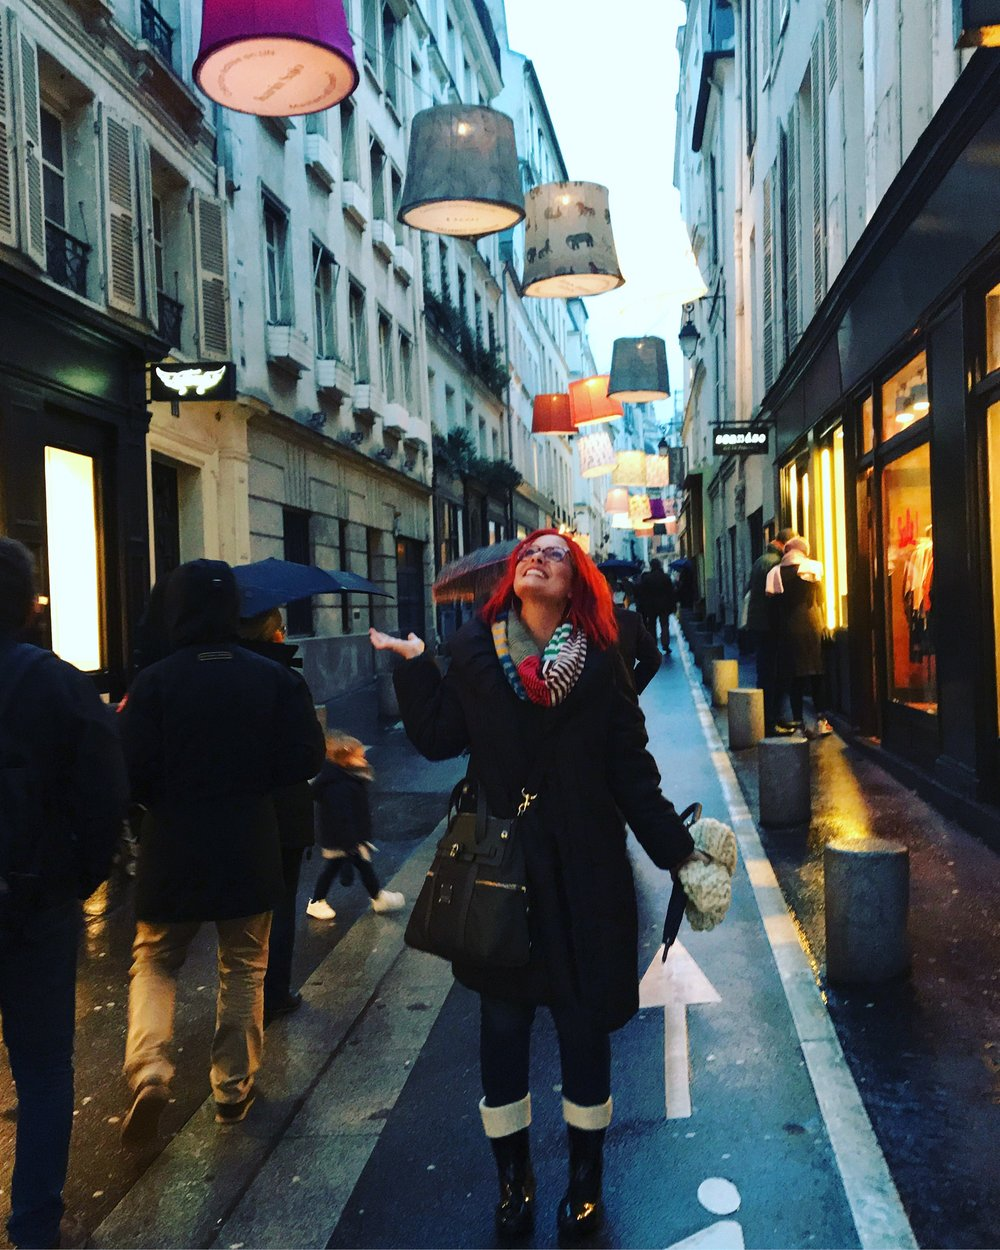 Lisa having a dreamy moment standing under the beautiful lanterns adorning the streets at Deco Off.